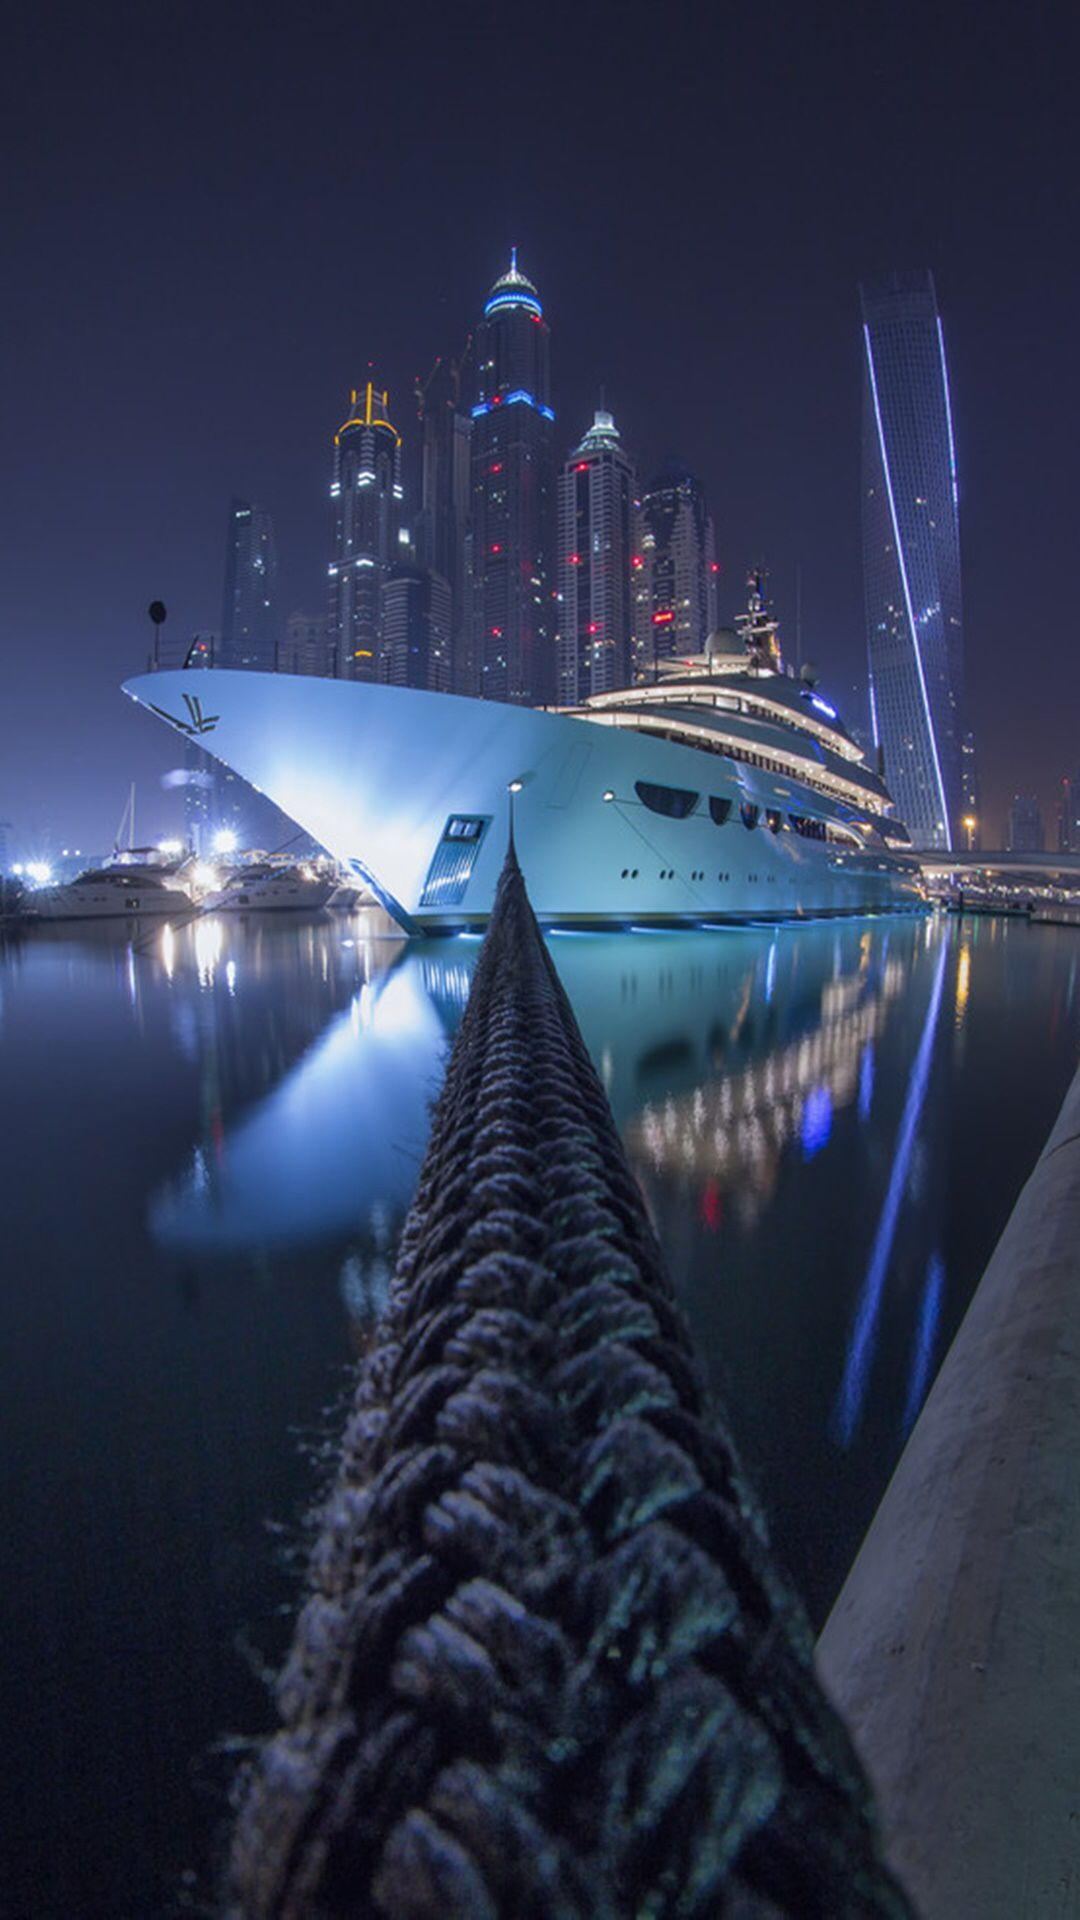 Iphone wallpaper yacht - Checkout This Wallpaper For Your Iphone Http Zedge Net W10647261